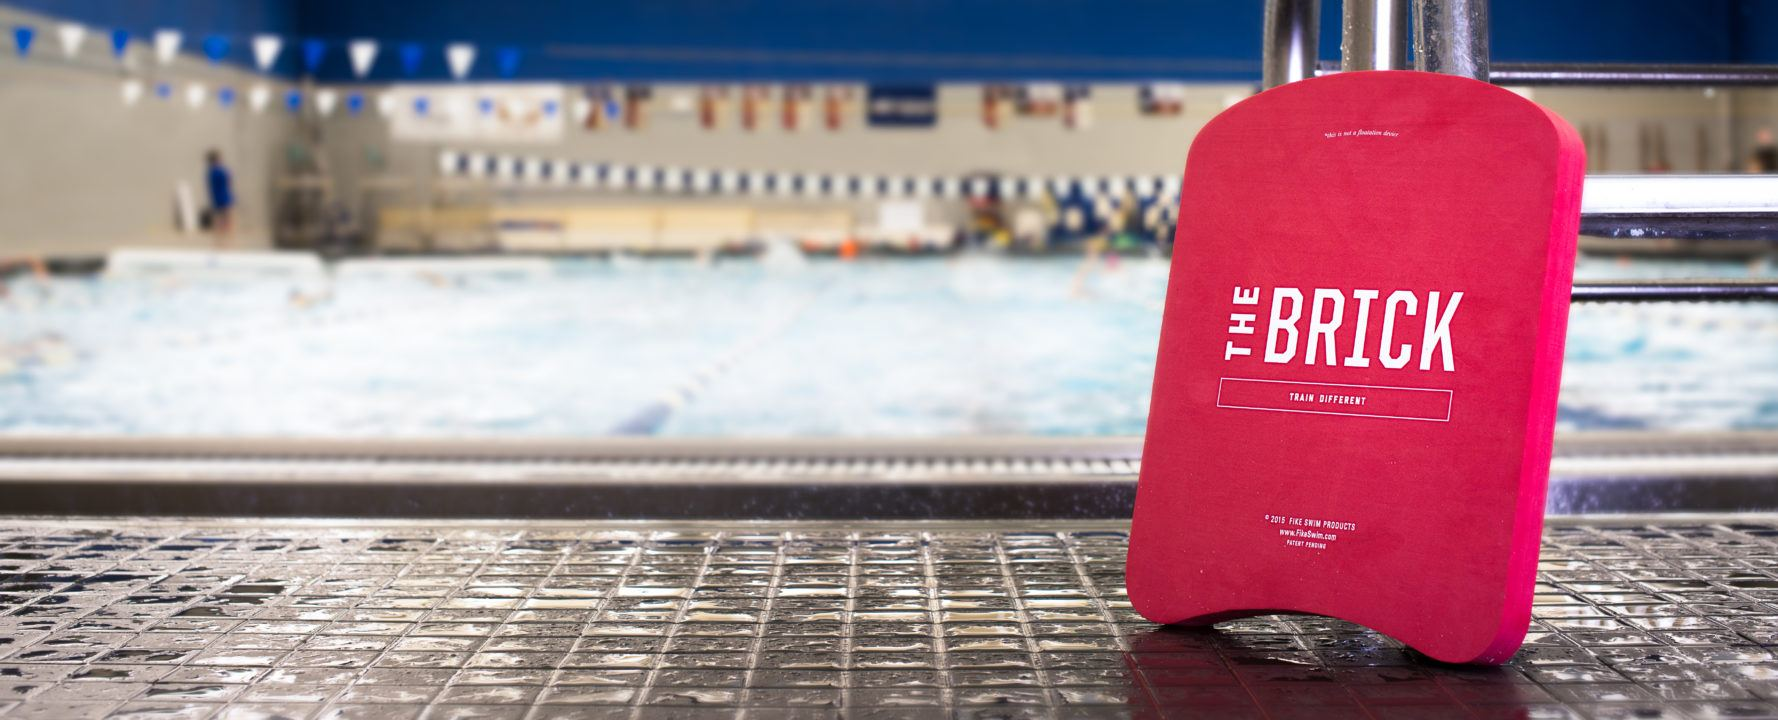 Fike Swim Celebrates 3rd Birthiversary, Brick Patent with Giveaway